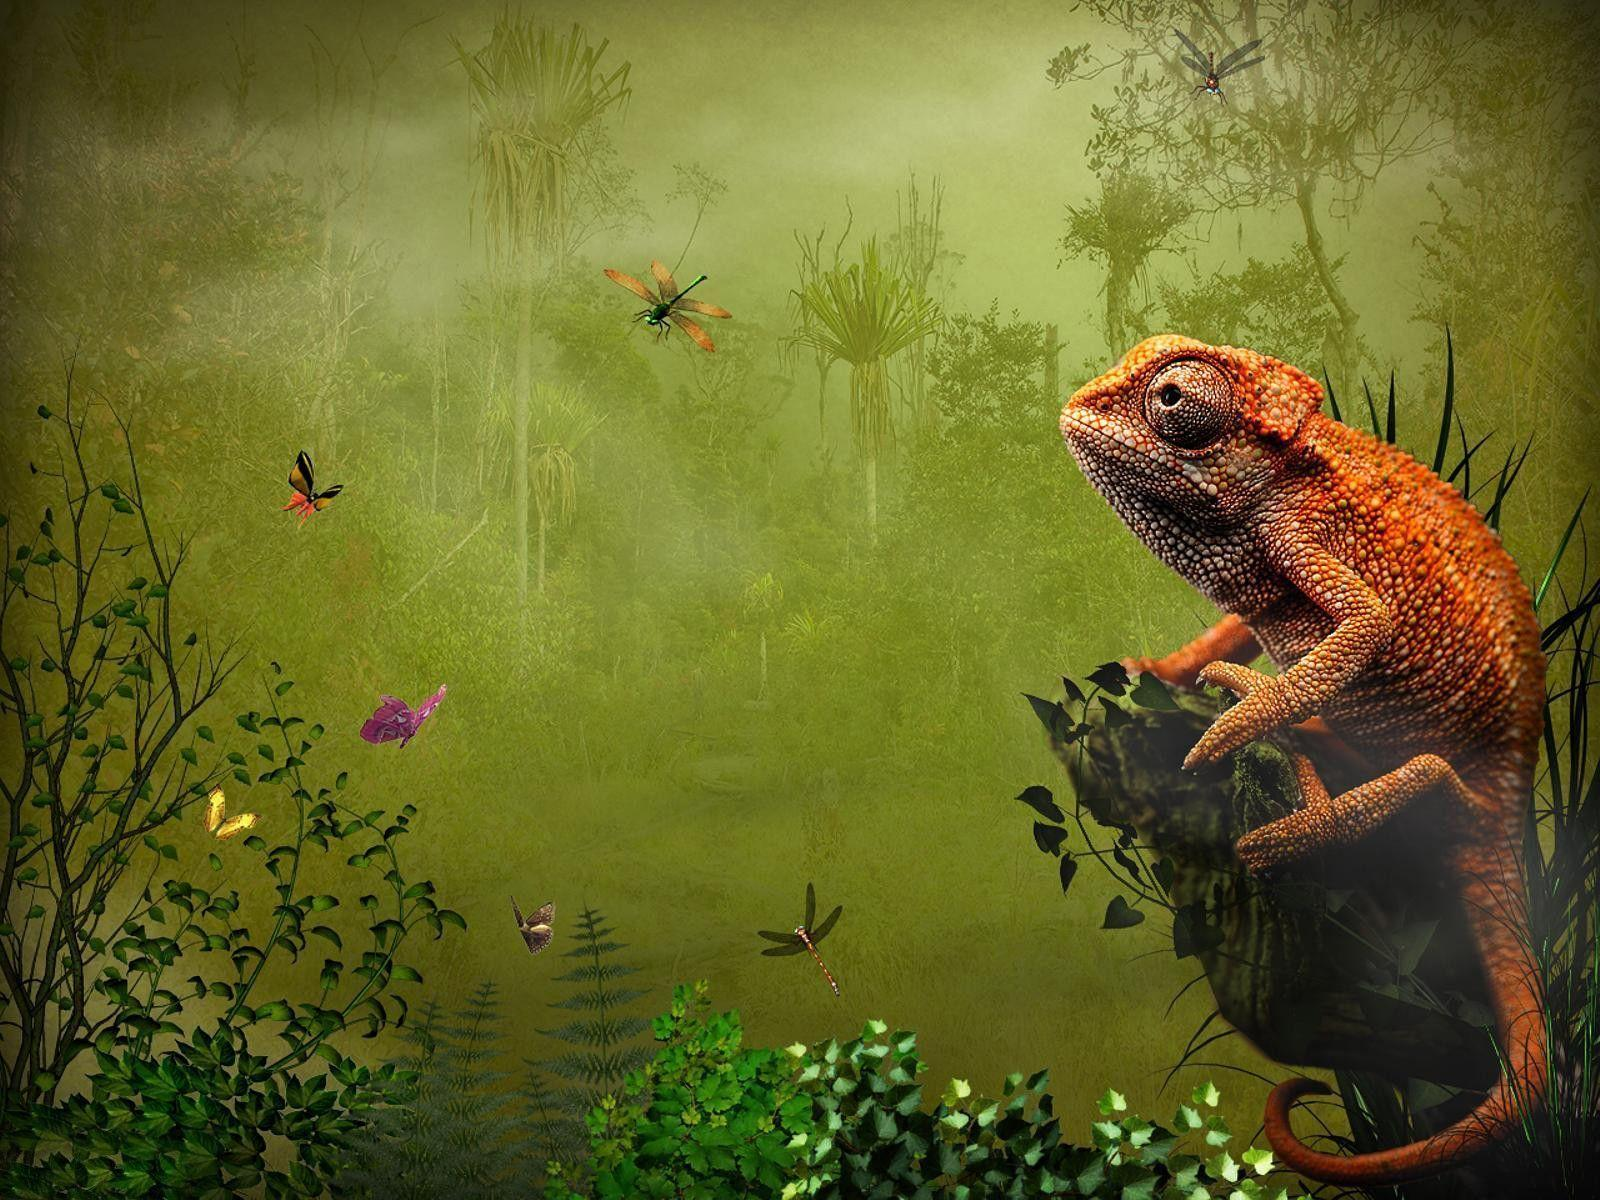 270 Lizard Wallpapers | Lizard Backgrounds Page 7